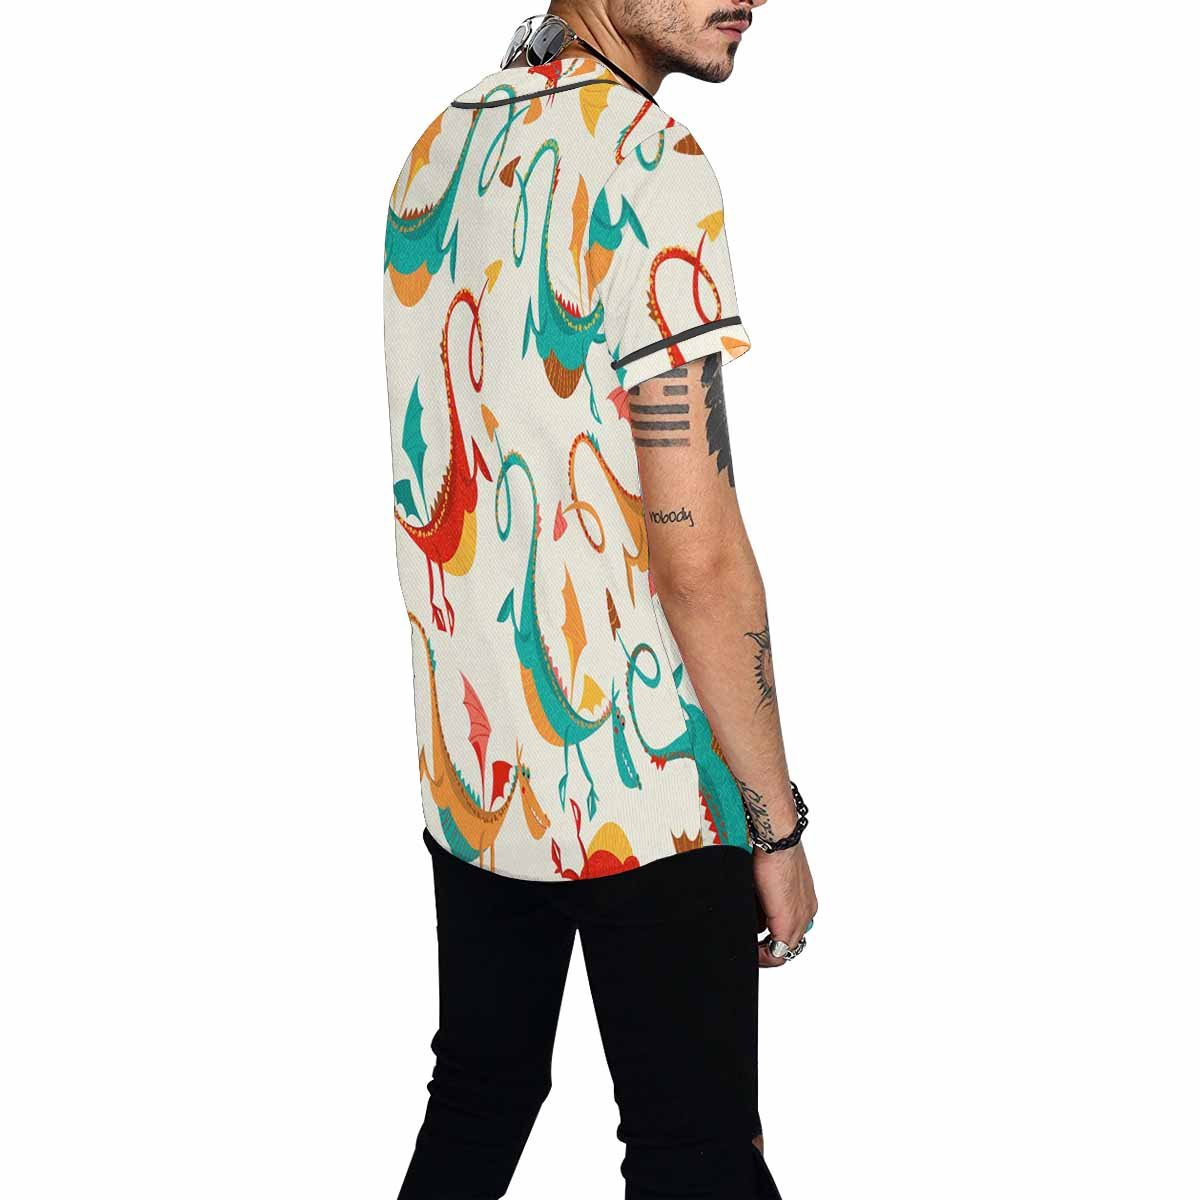 INTERESTPRINT Mens Button Down Baseball Jersey Multi-Colored Funny Dragons